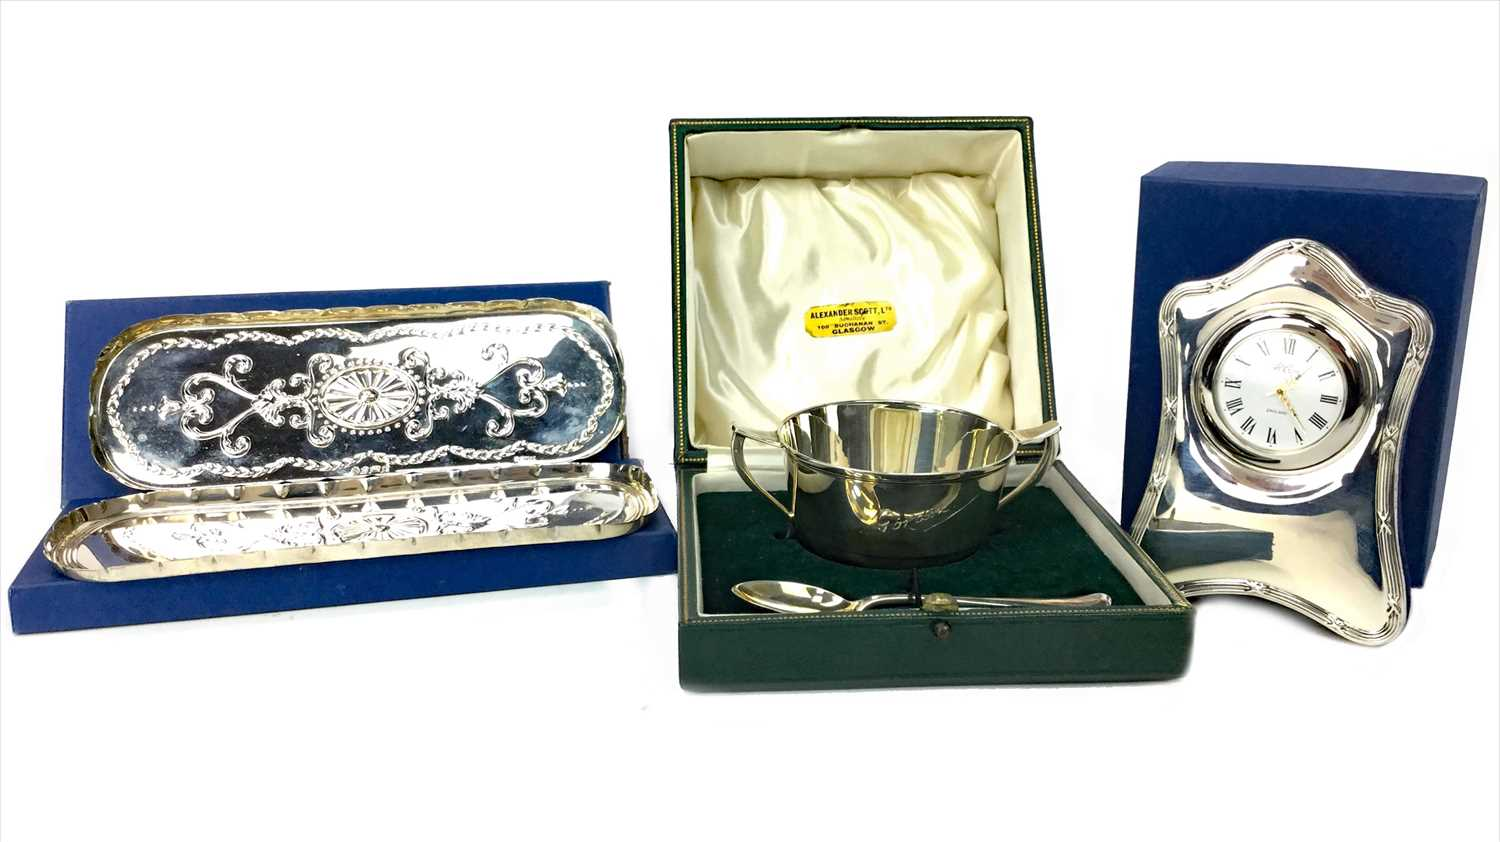 Lot 881 - A CONTEMPORARY SILVER FRAMED BEDSIDE TIMEPIECE